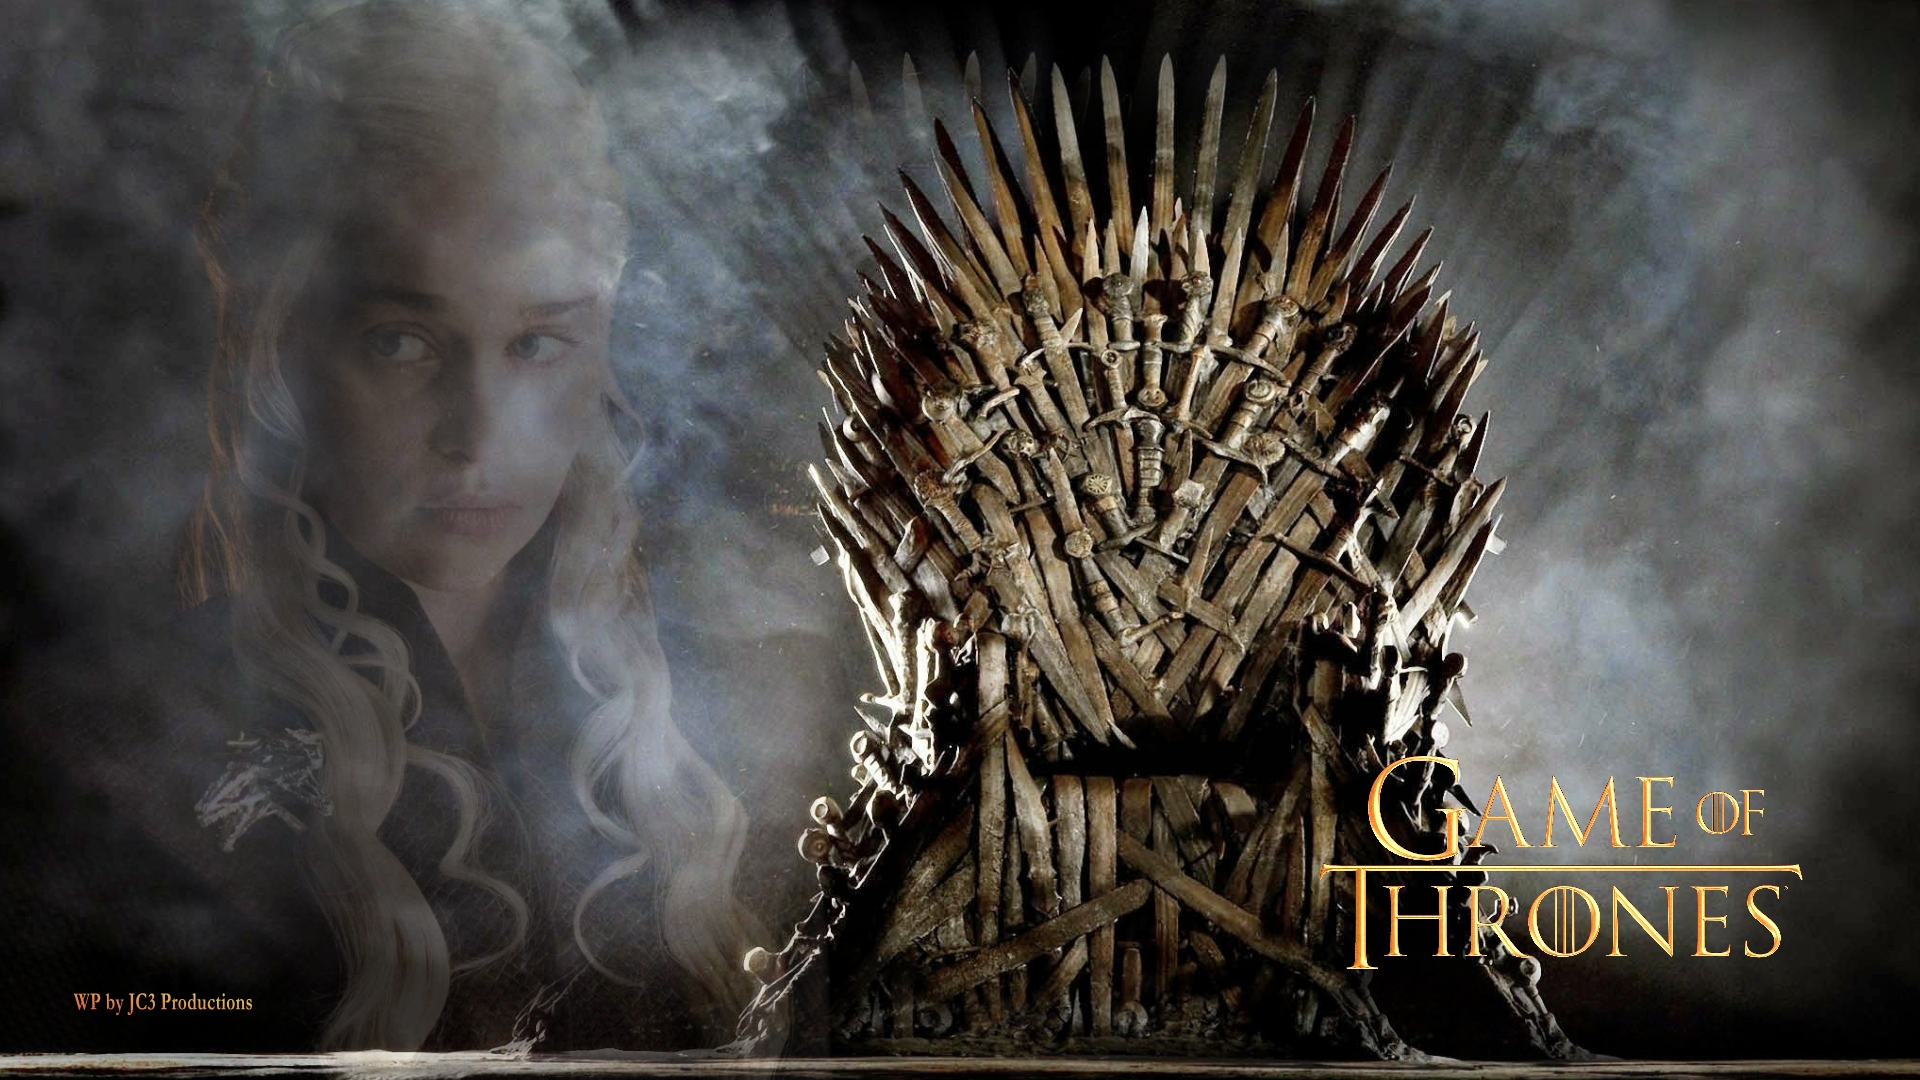 Game Of Thrones Images The Throne I HD Wallpaper And Background Photos